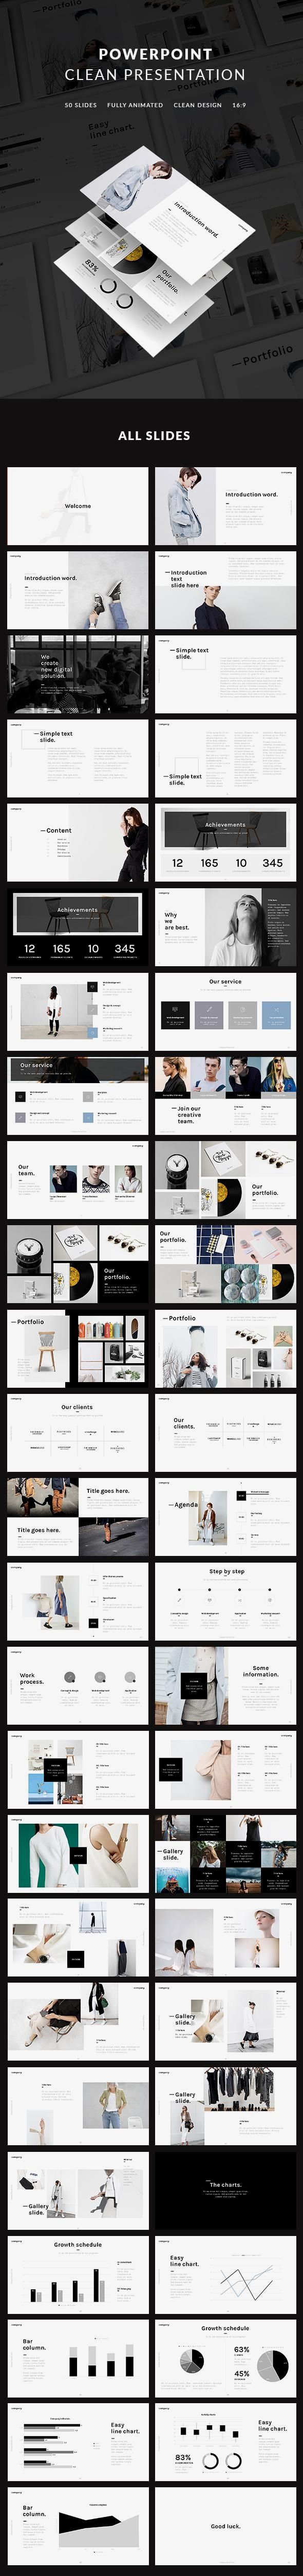 Clean Presentation for $20 GraphicRiver presentation powerpoint